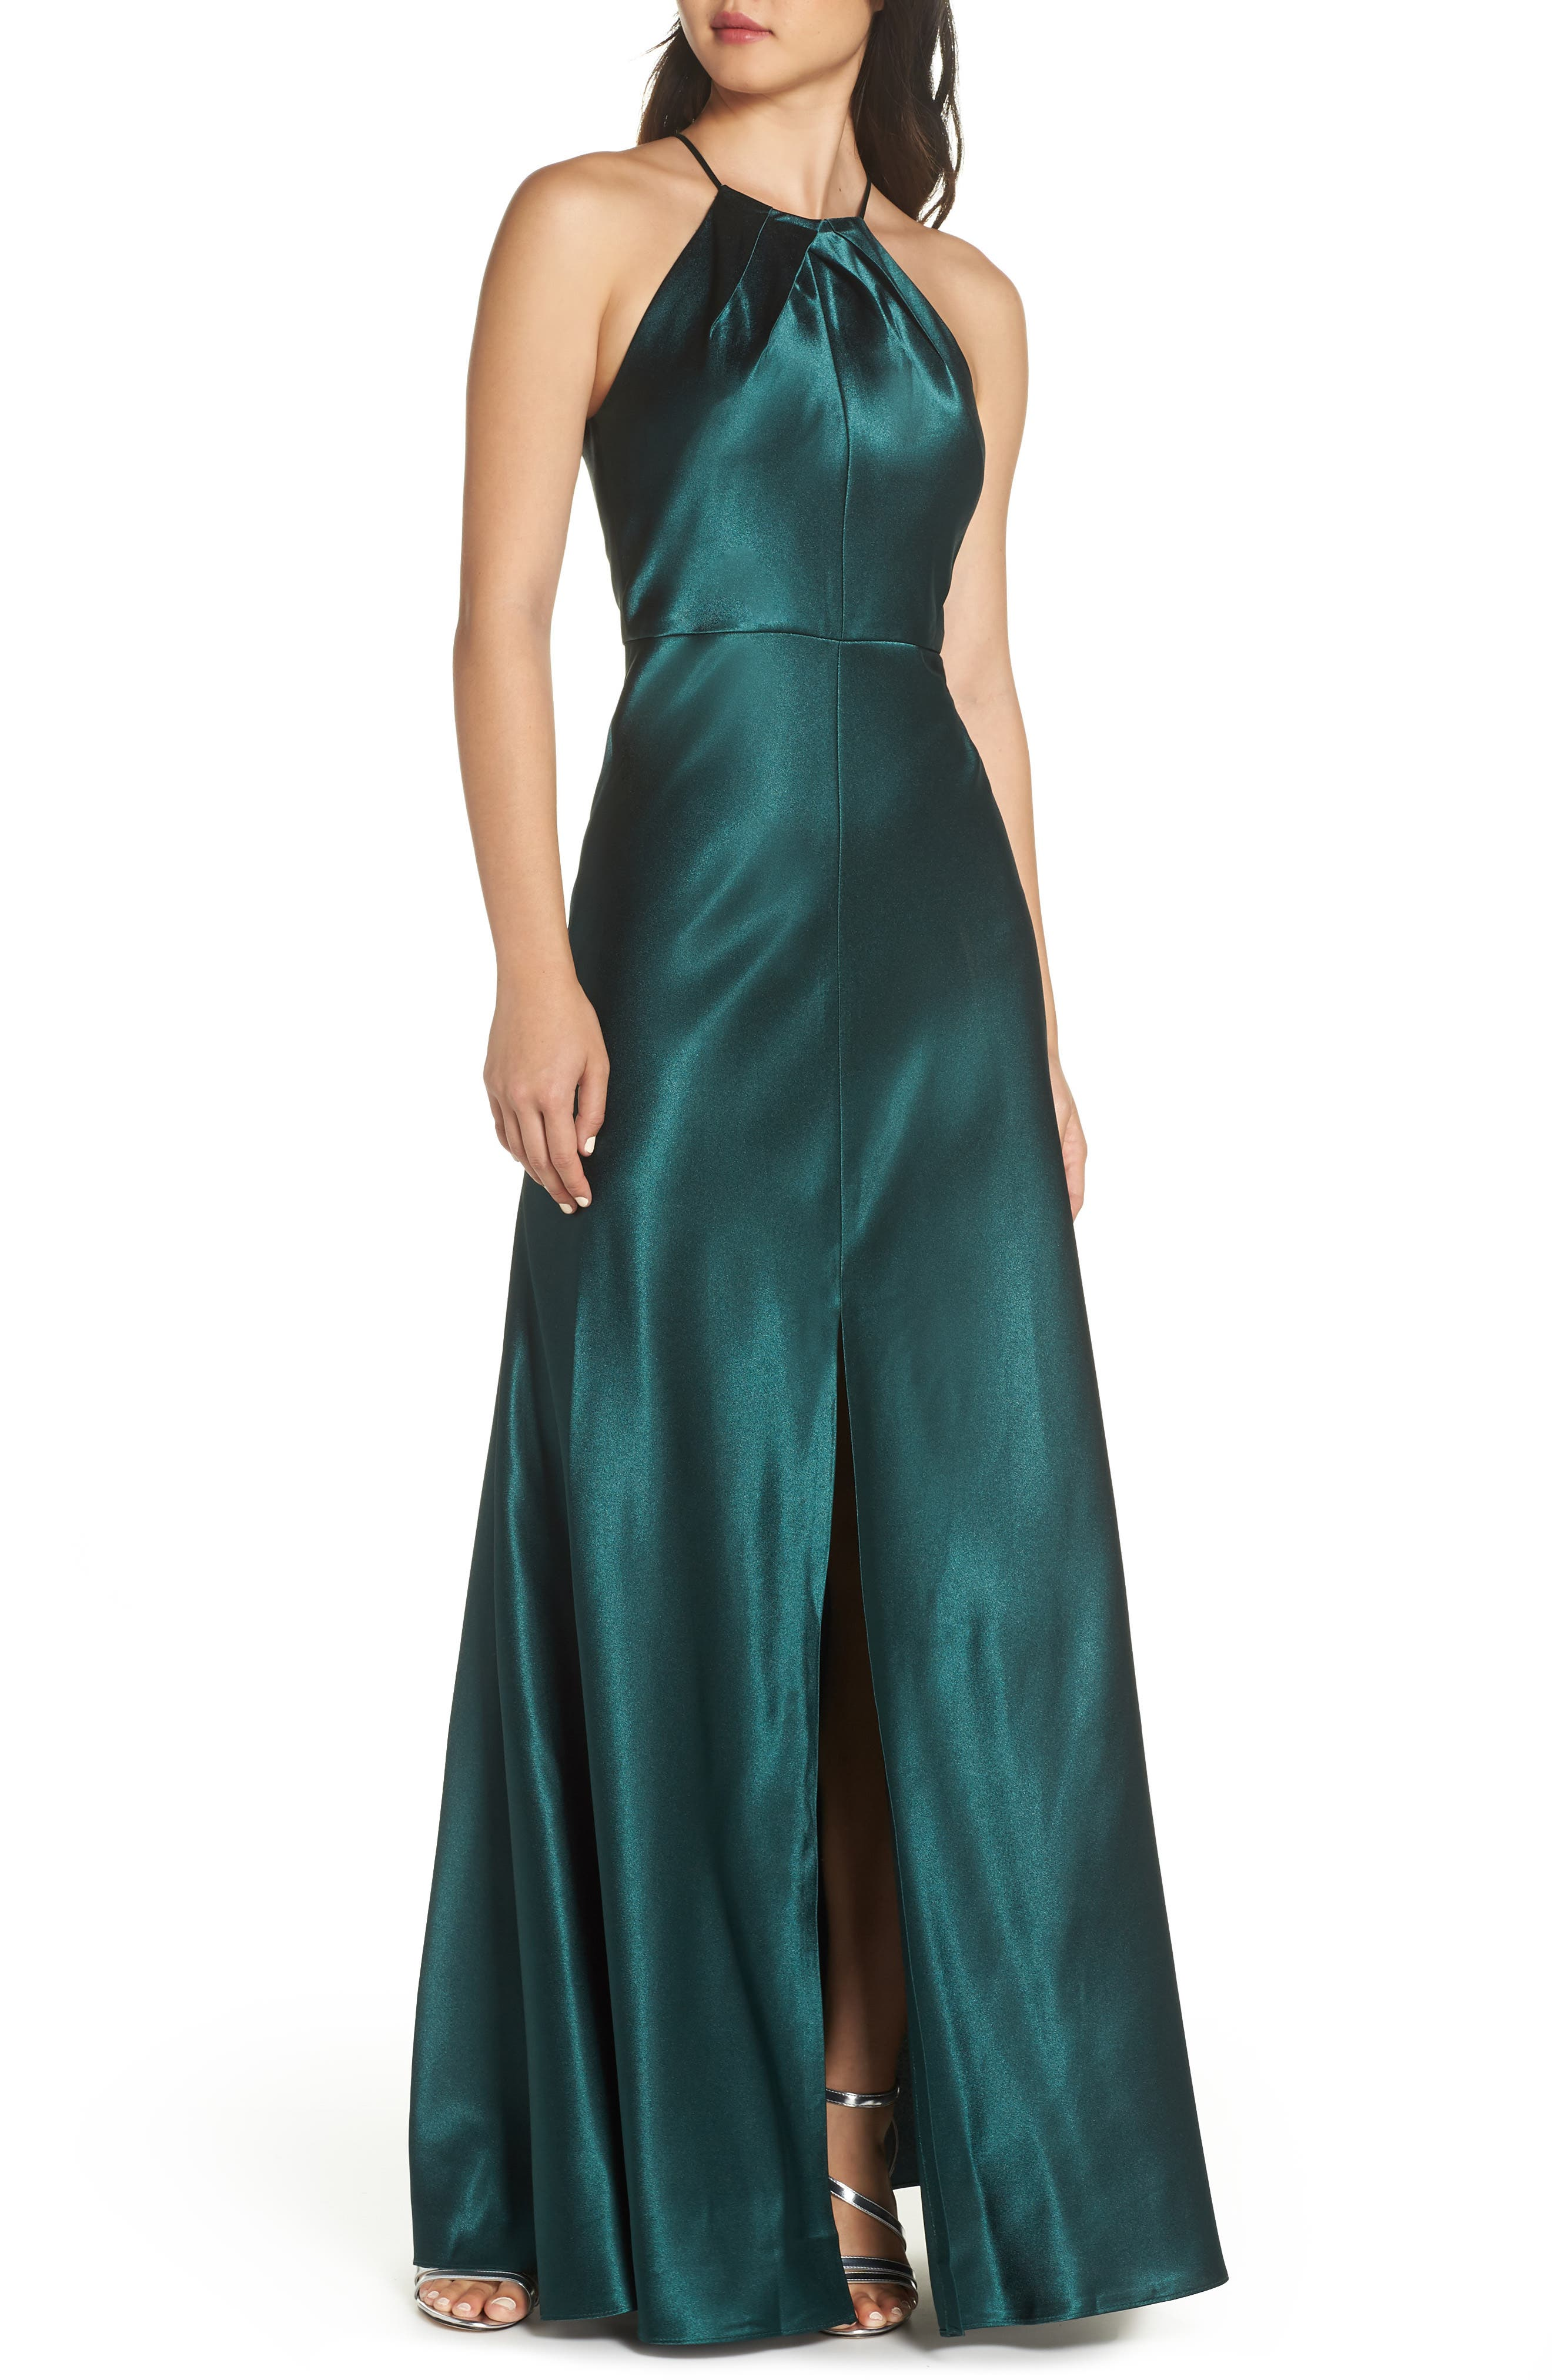 Cameron Halter Neck Satin Back Gown in Emerald